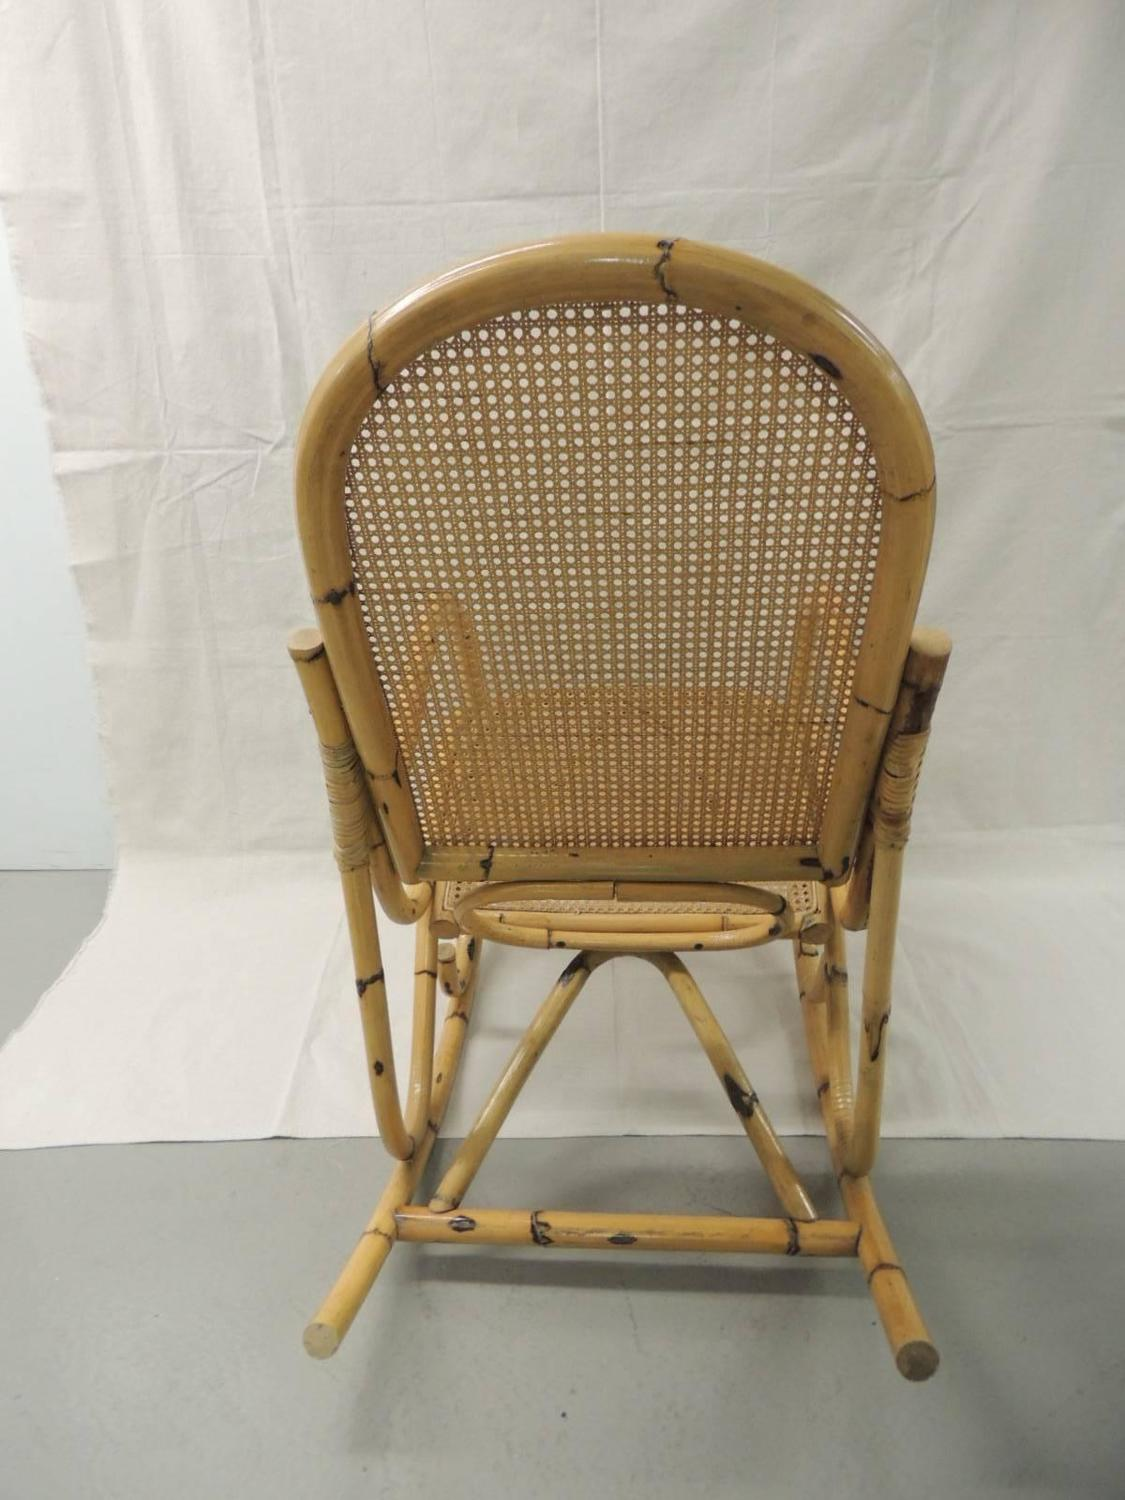 Vintage Bamboo and Wicker Armed Rocking Chair For Sale at 1stdibs